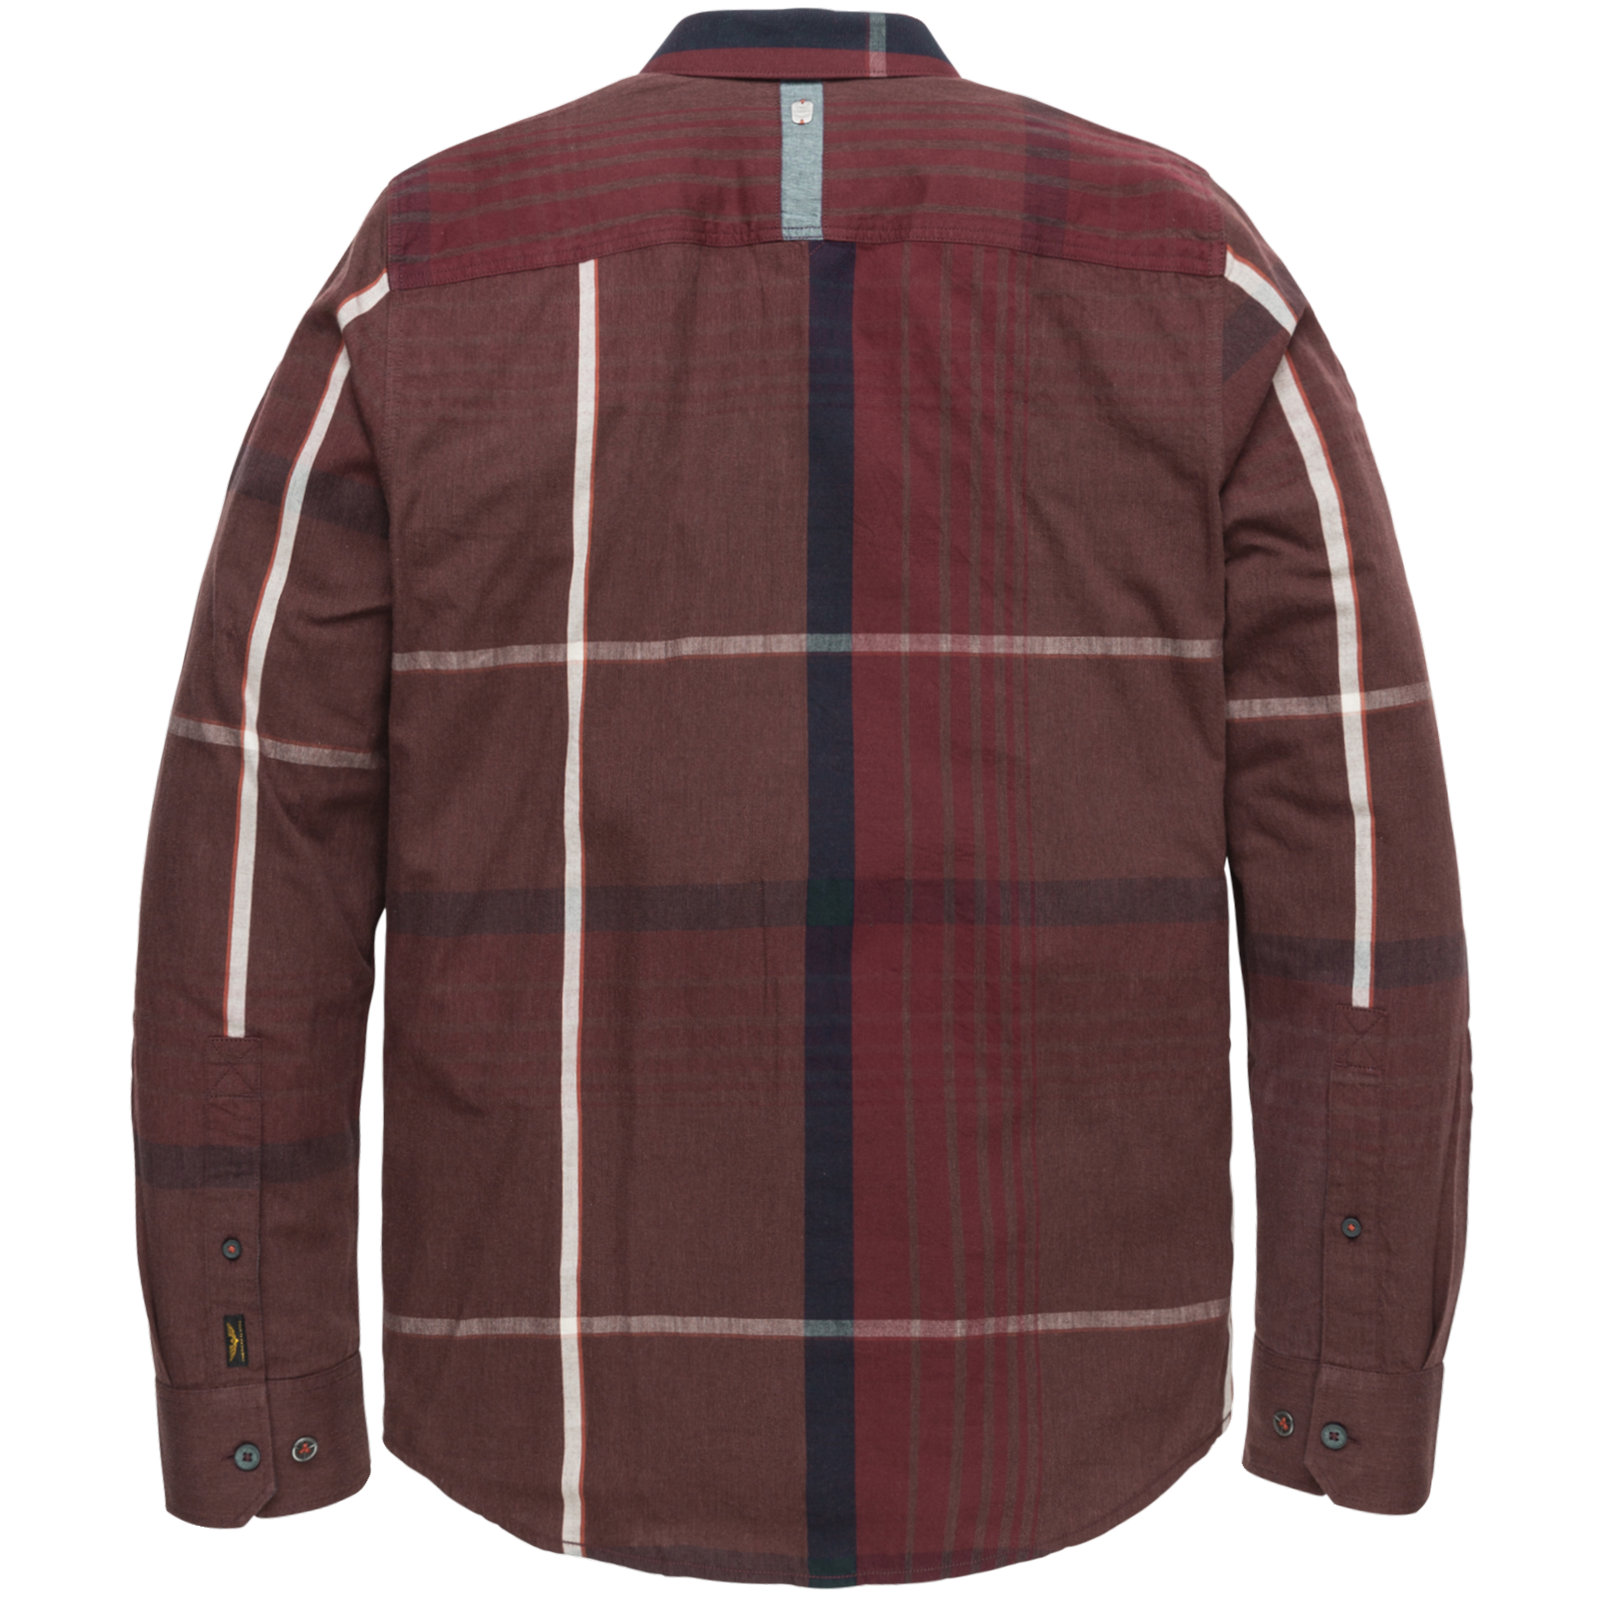 PME Legend PSI206221 4090 PME Legend long sleeve shirt melange check fabric Red